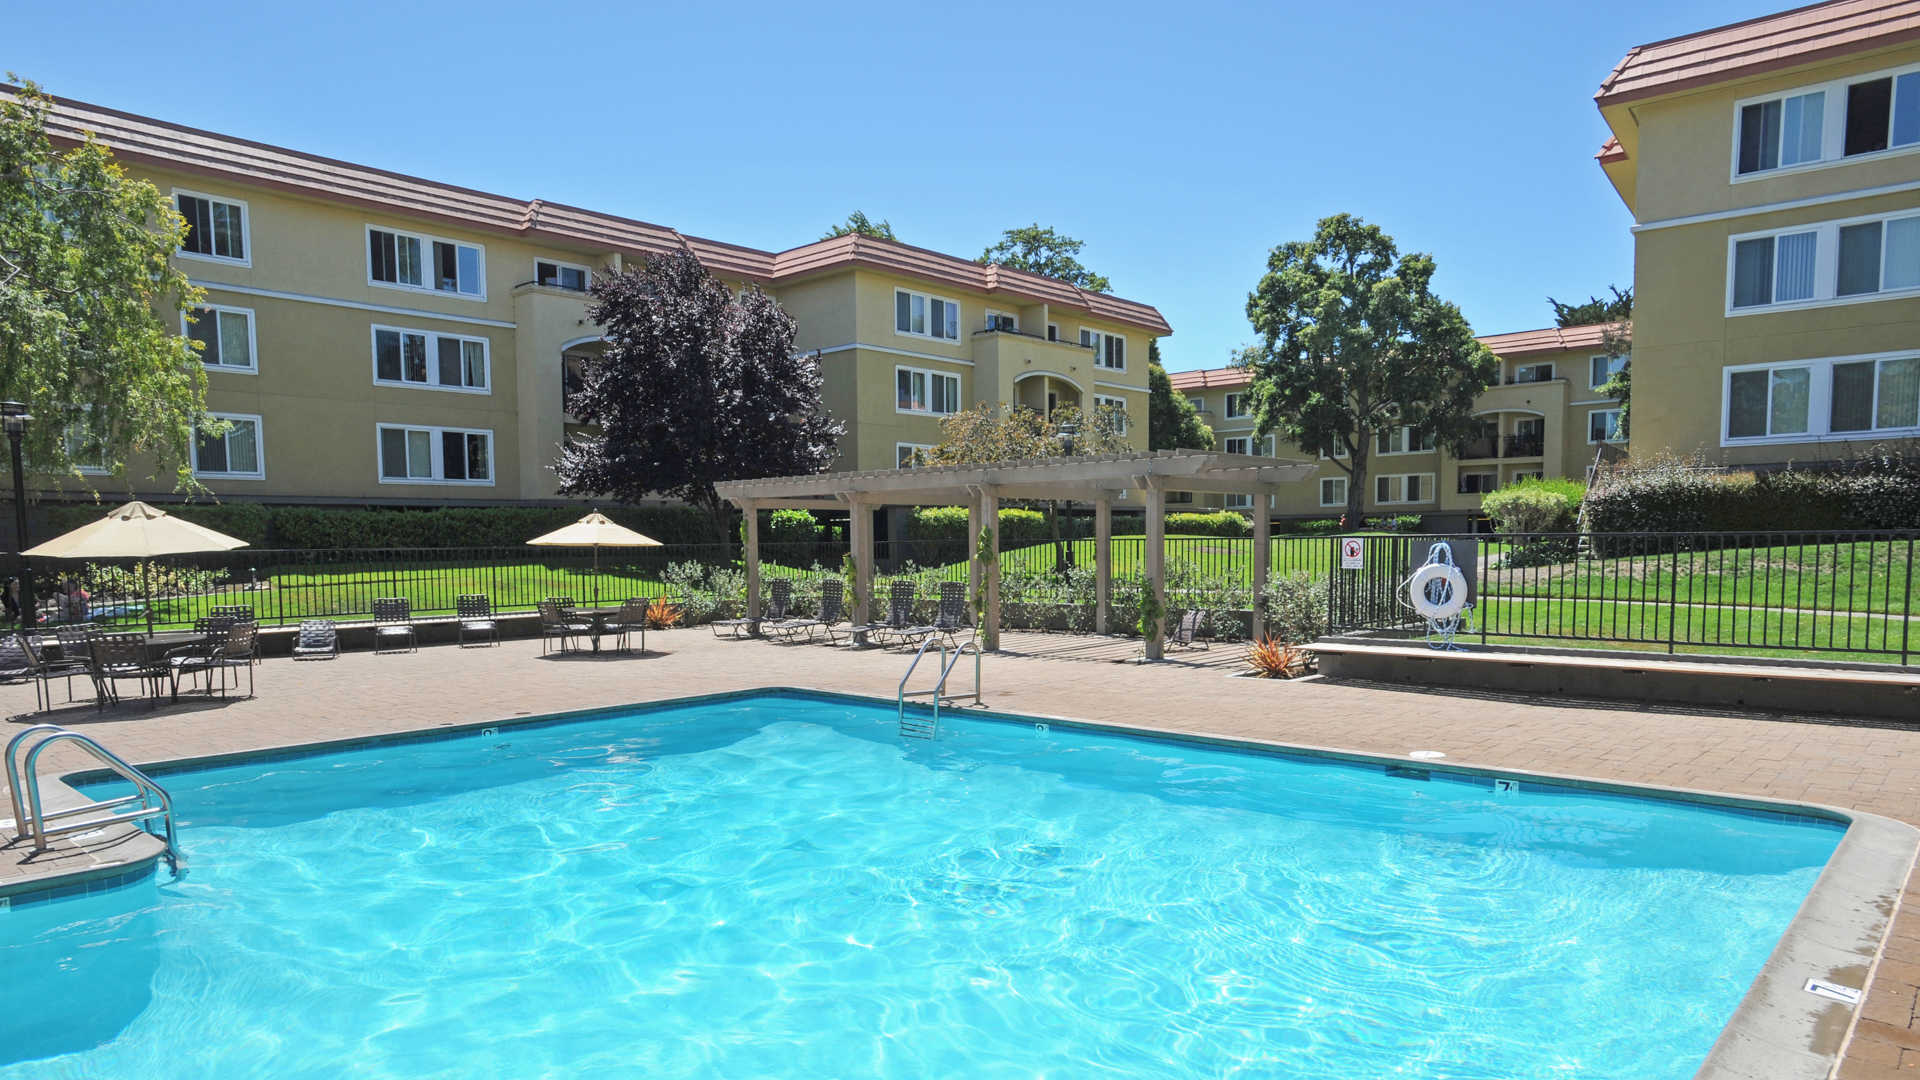 Private Indoor Swimming Pools northpark apartments - burlingame - 1080 carolan avenue